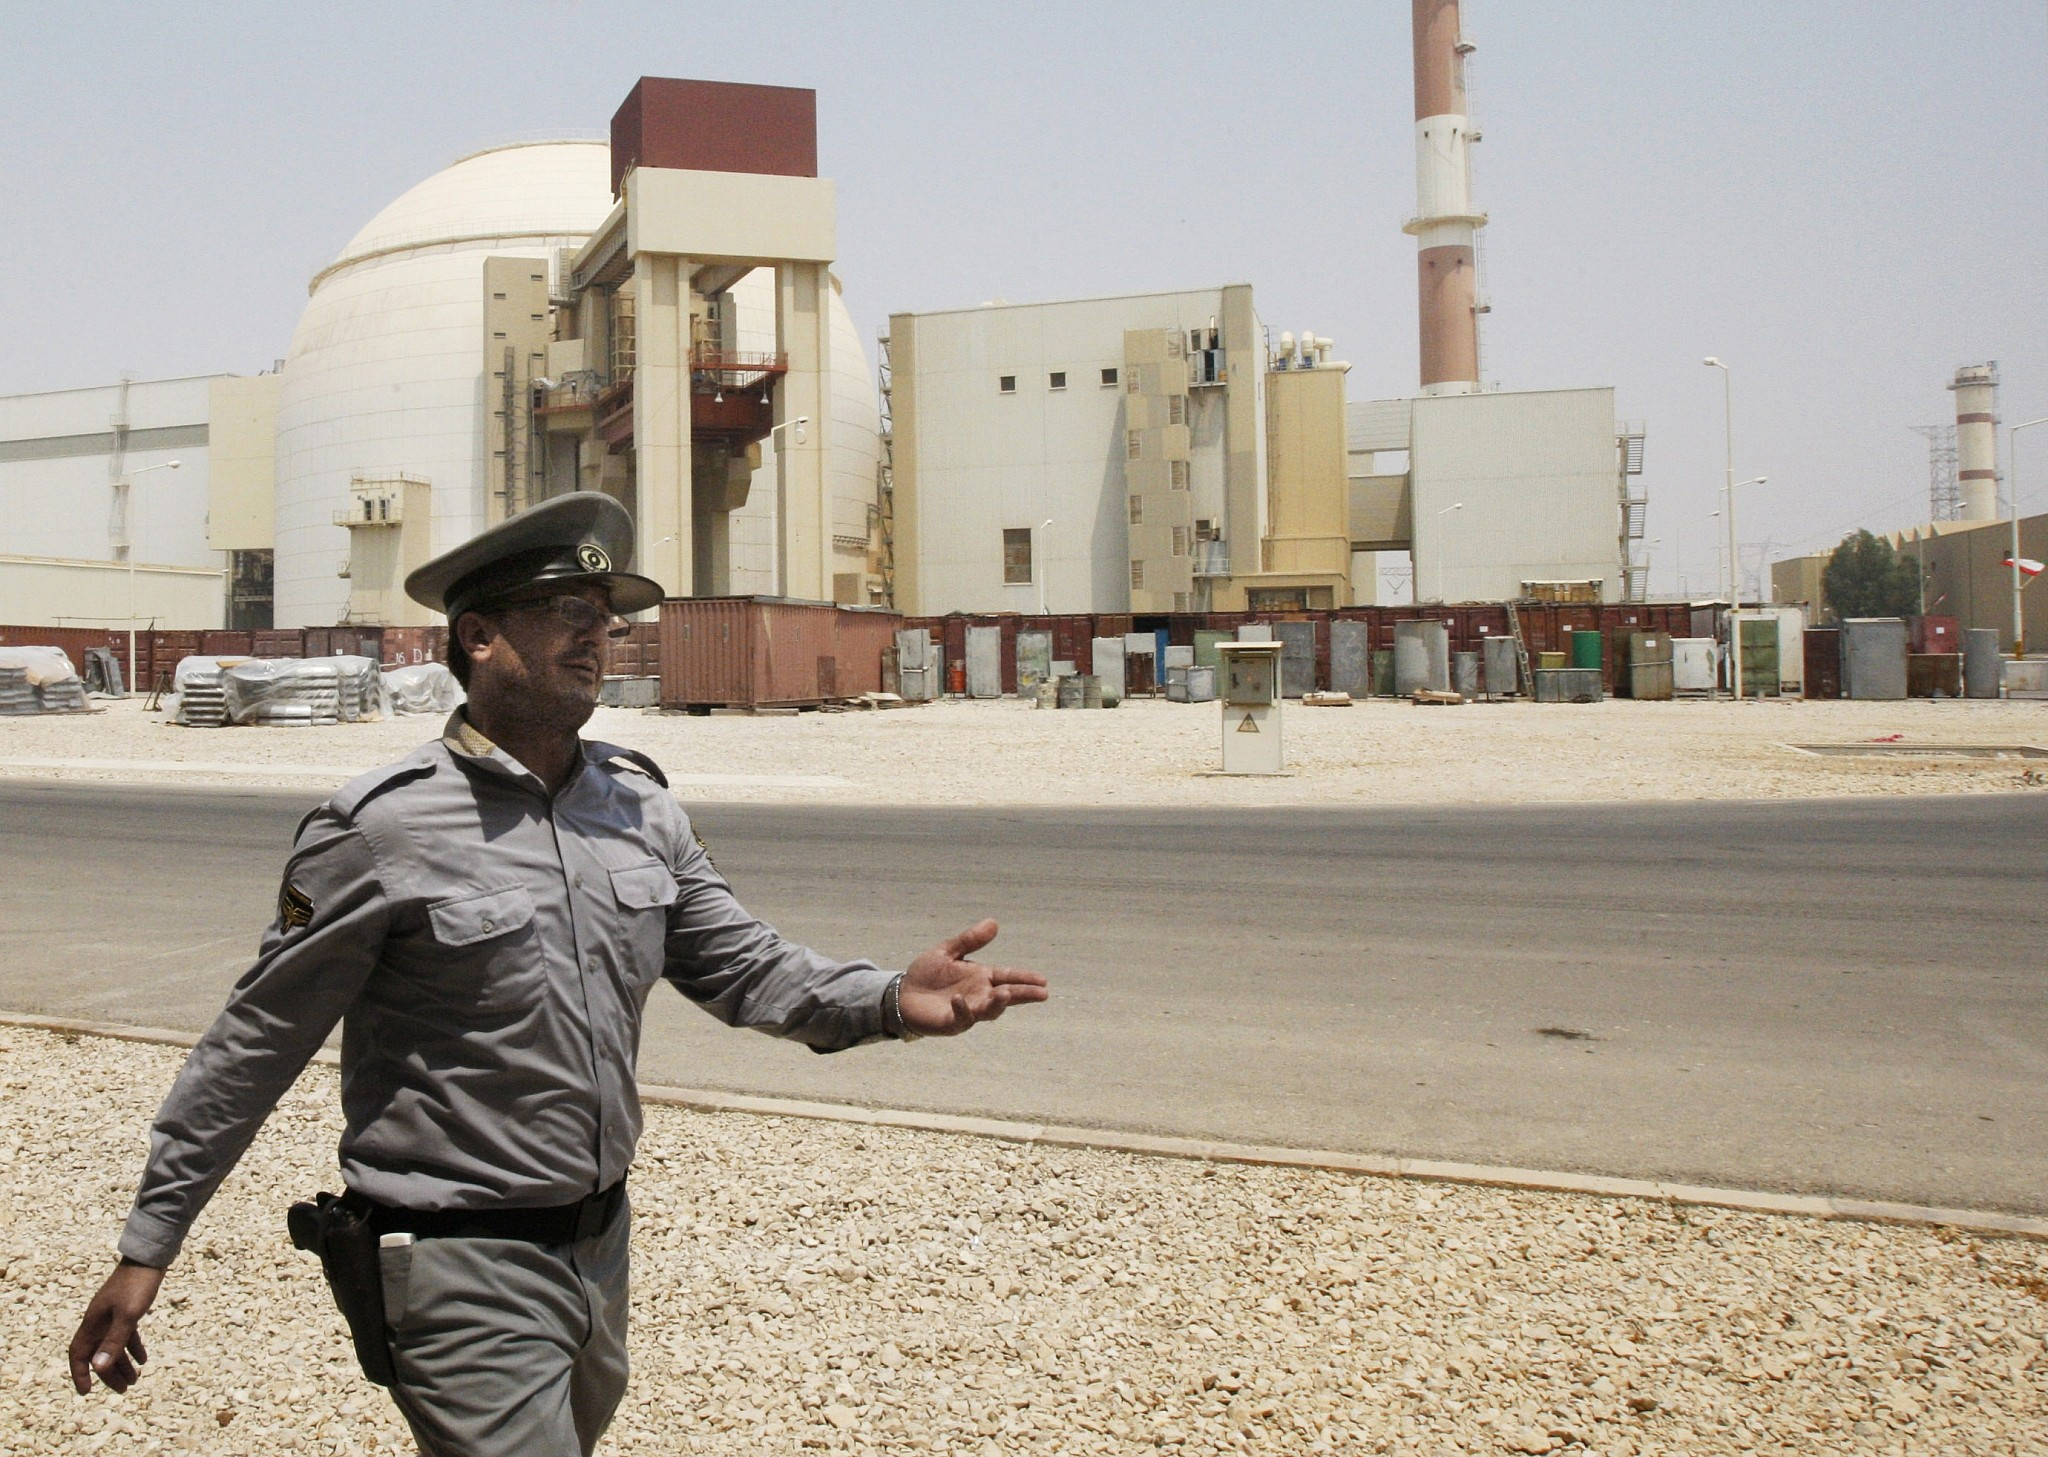 Iran natural disaster: 5.1-magnitude quake hits near Bushehr nuclear plant